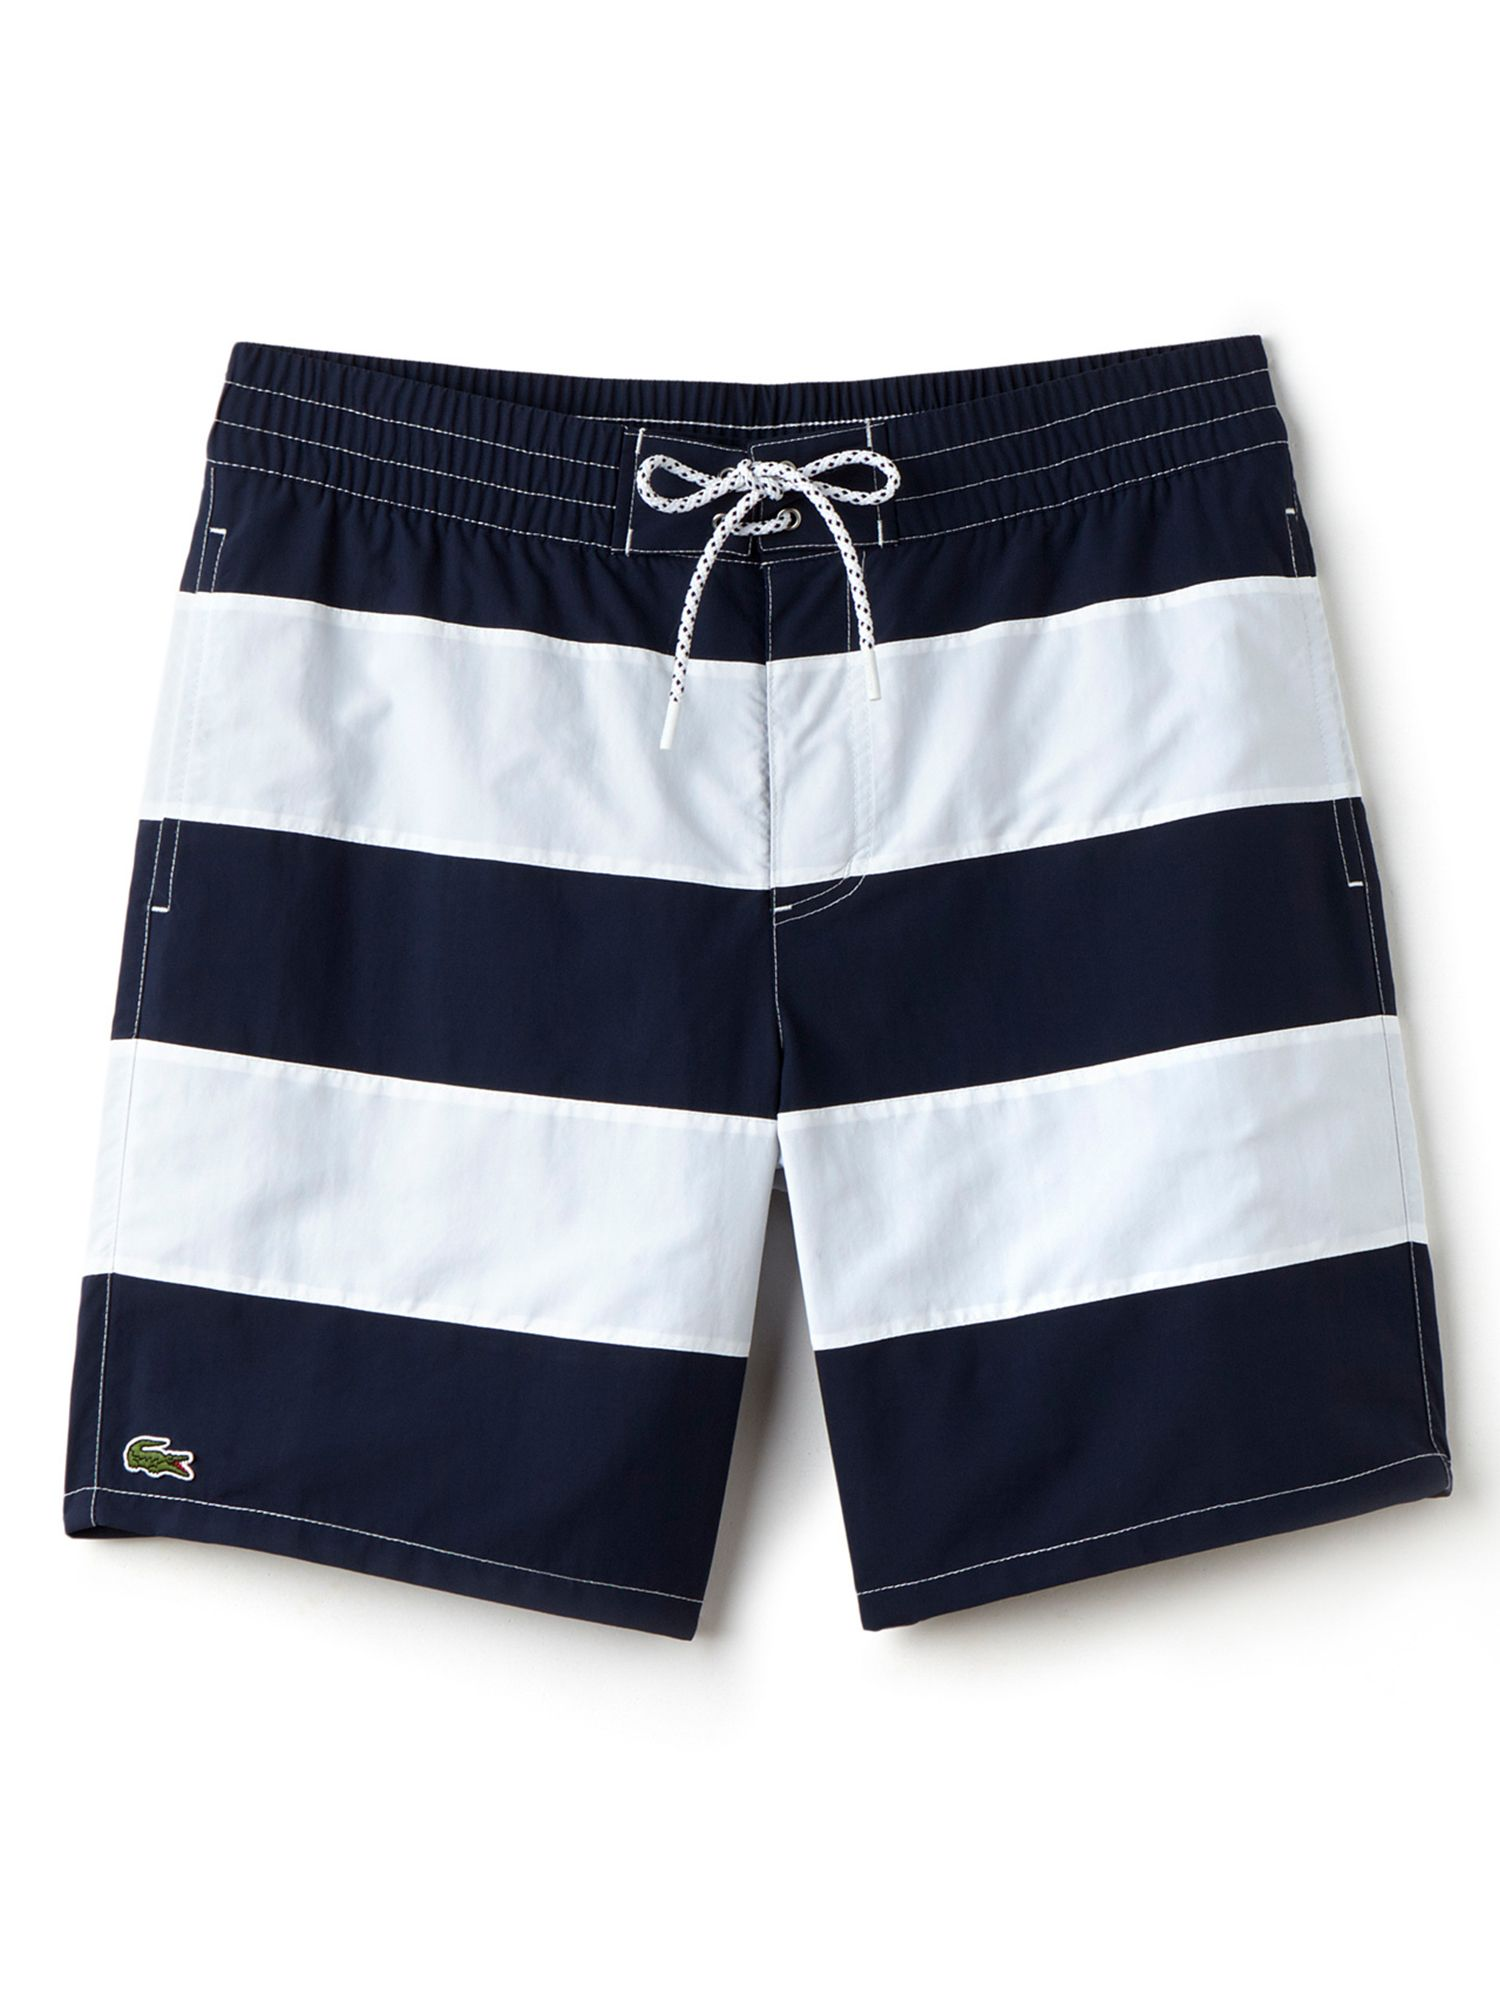 Mens Lacoste Striped Swim Shorts Navy & White